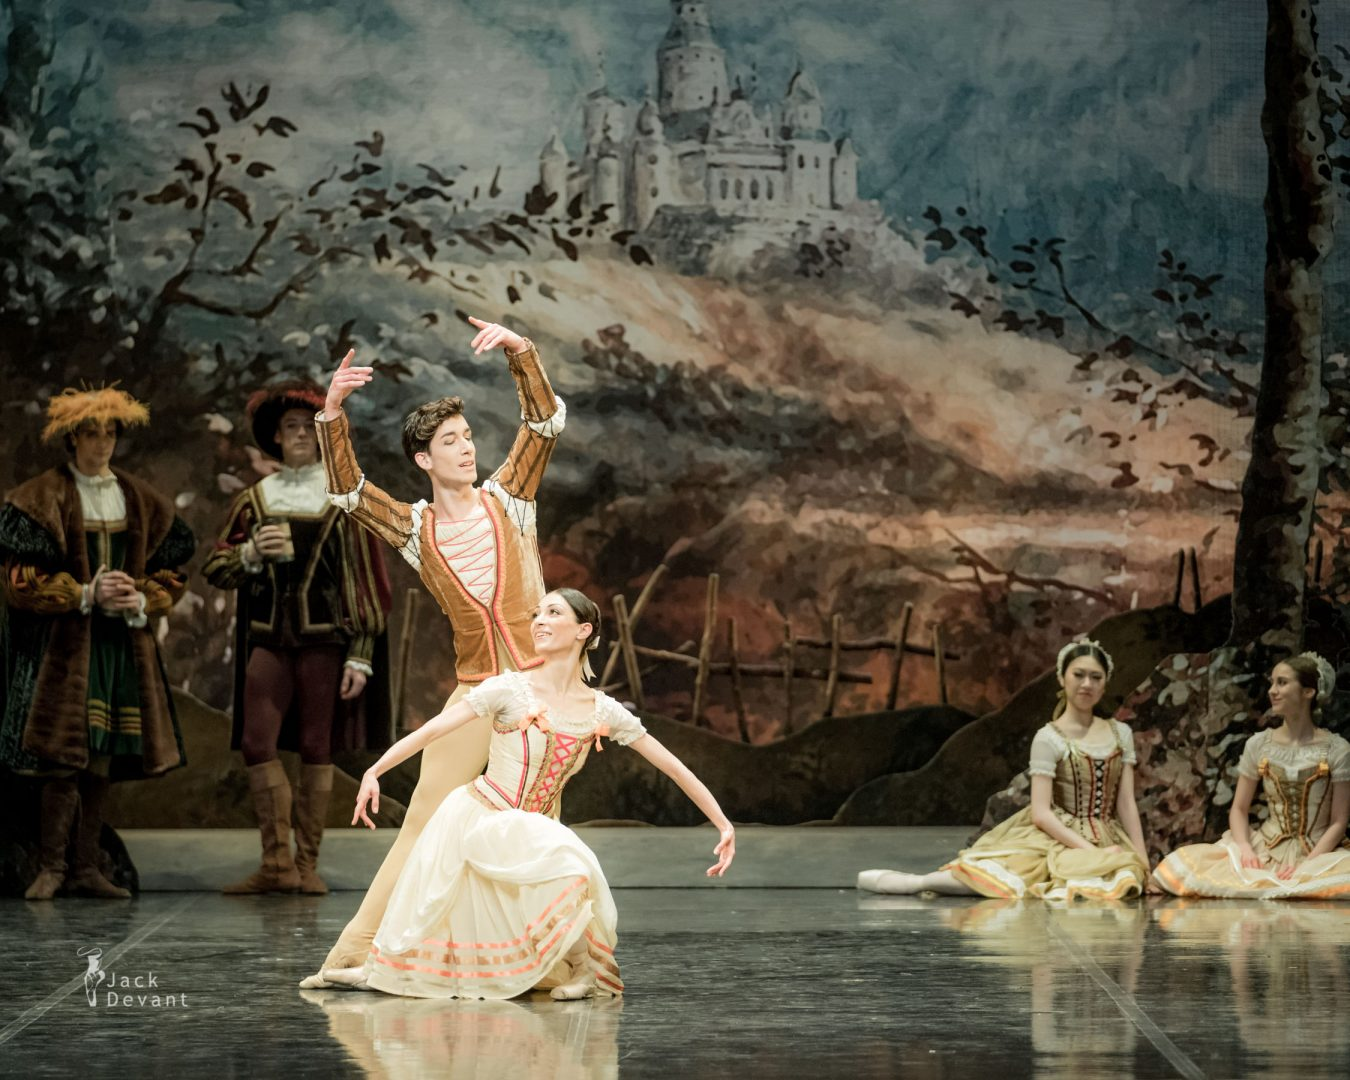 Giselle, Marta Navasardyan and Eneko Amoros in peasant pdd final pose